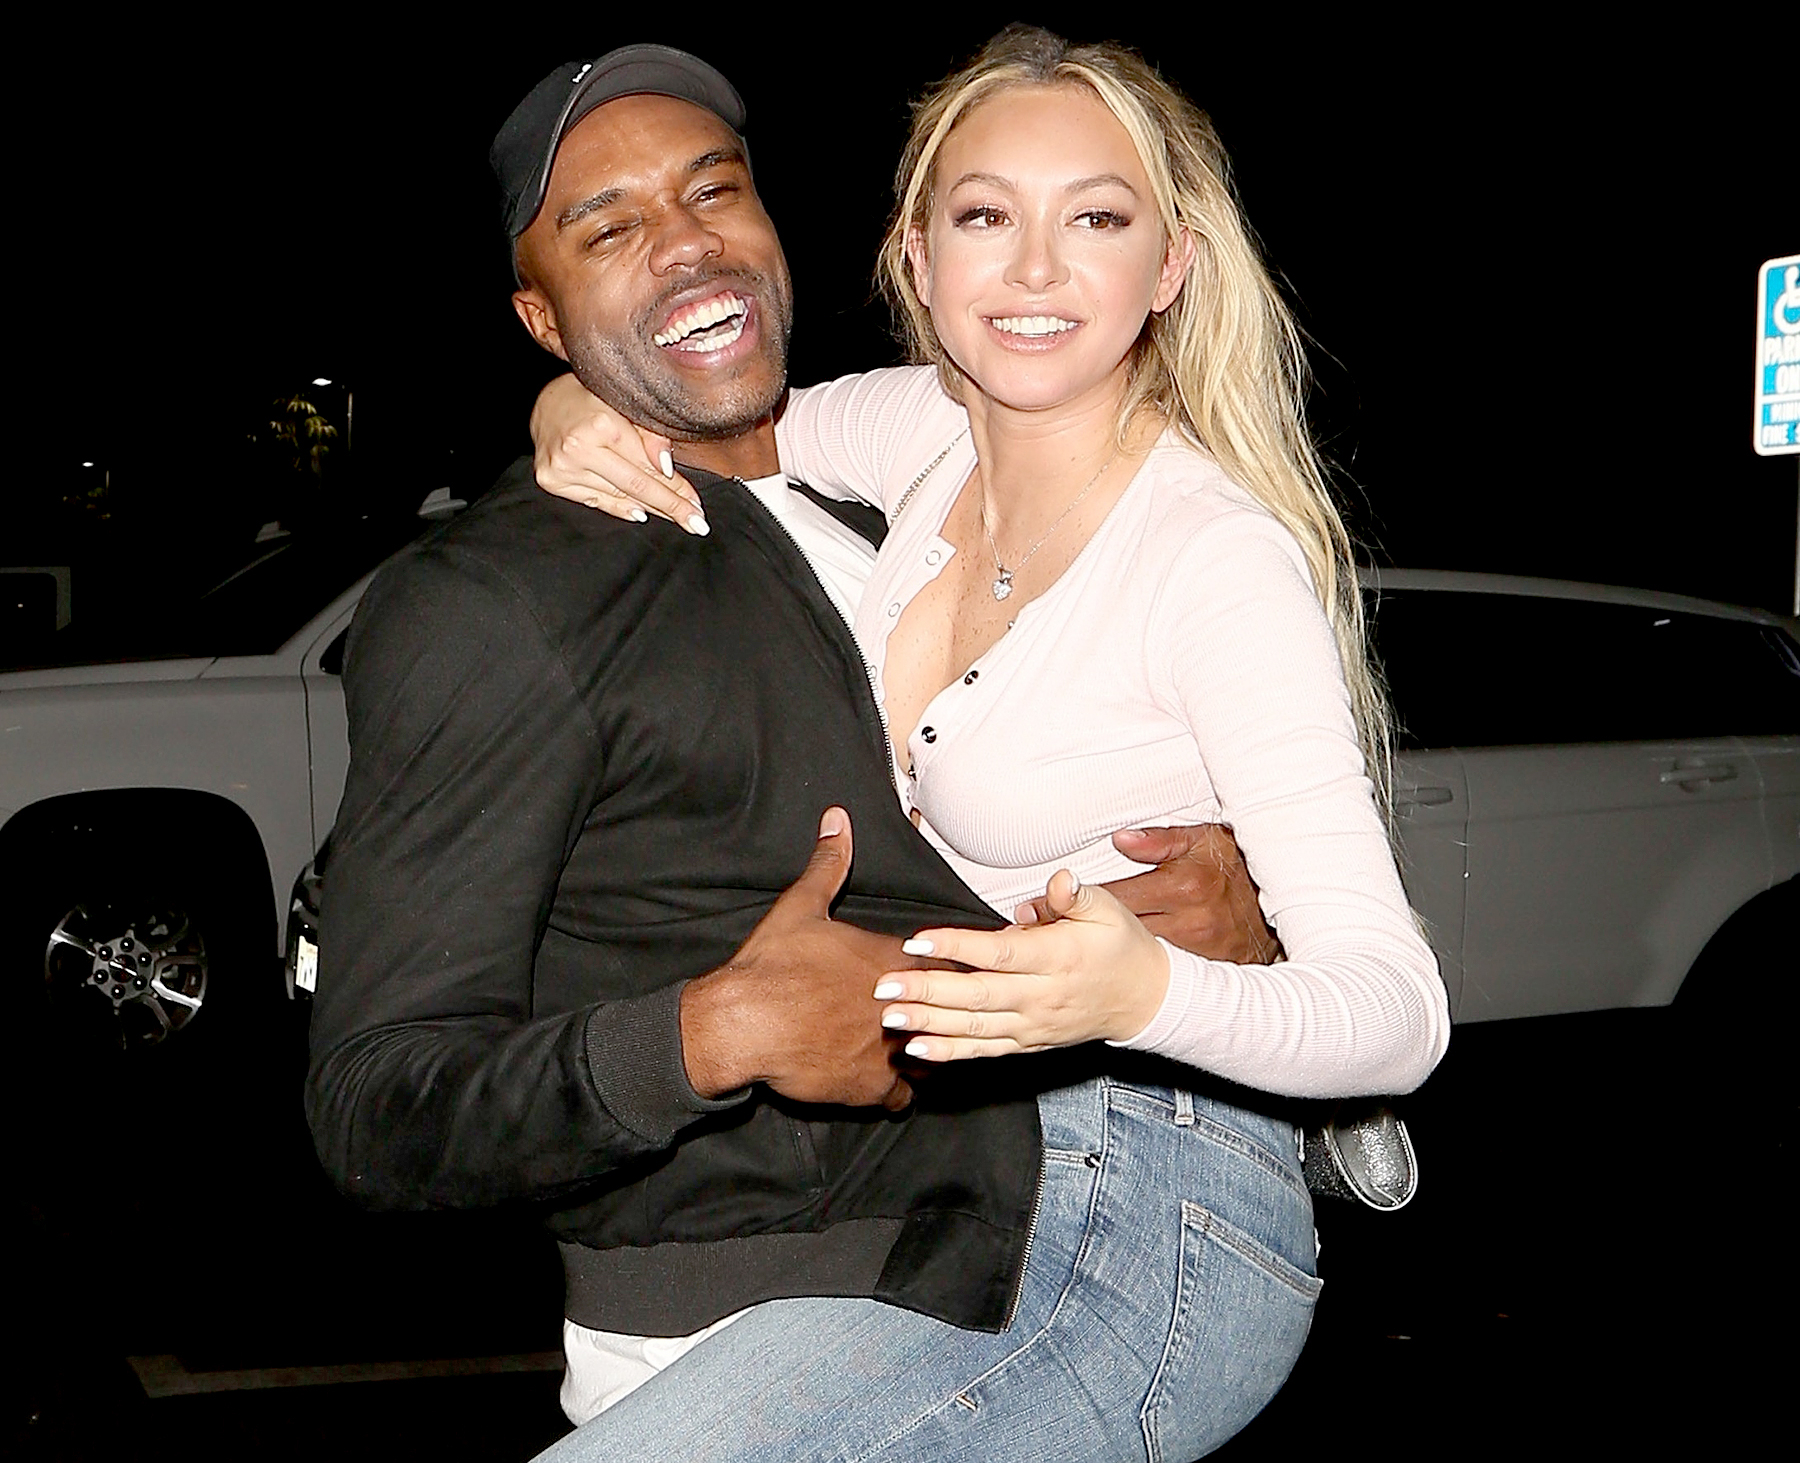 Corinne Olympios and DeMario Jackson reunite on August 30, 2017.